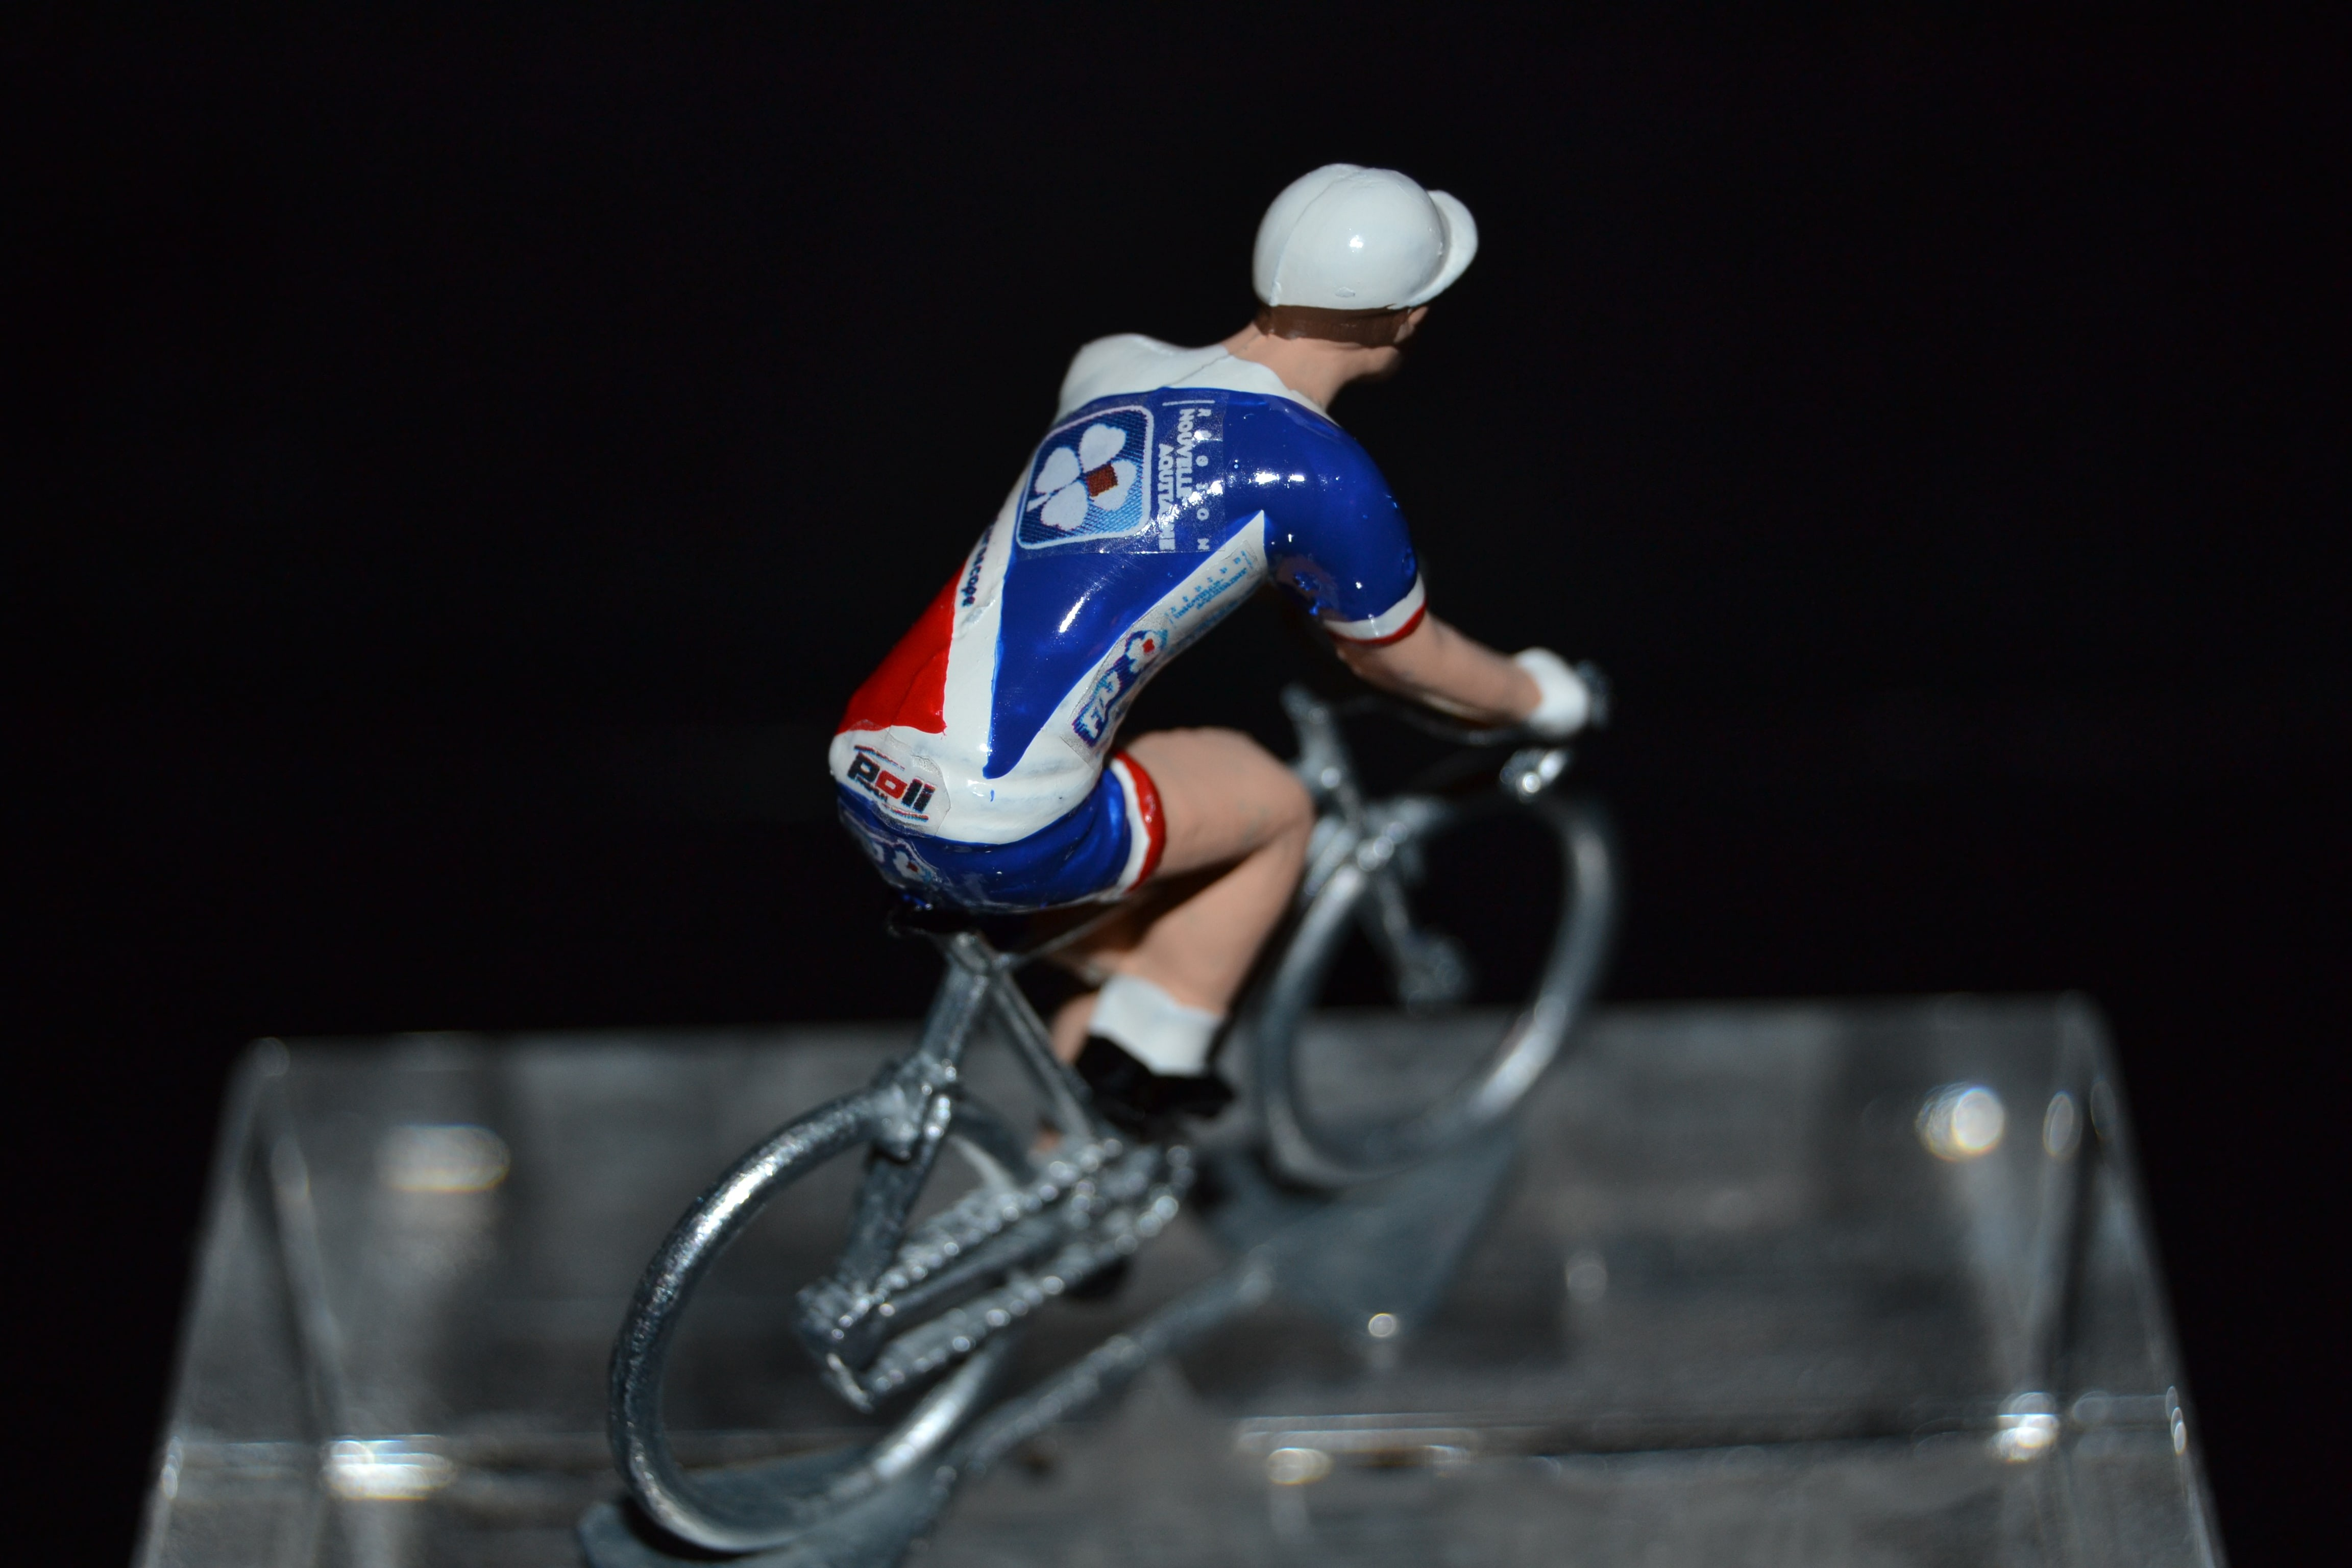 Champion of portugal j mendes small figurine-cycling cyclist figure